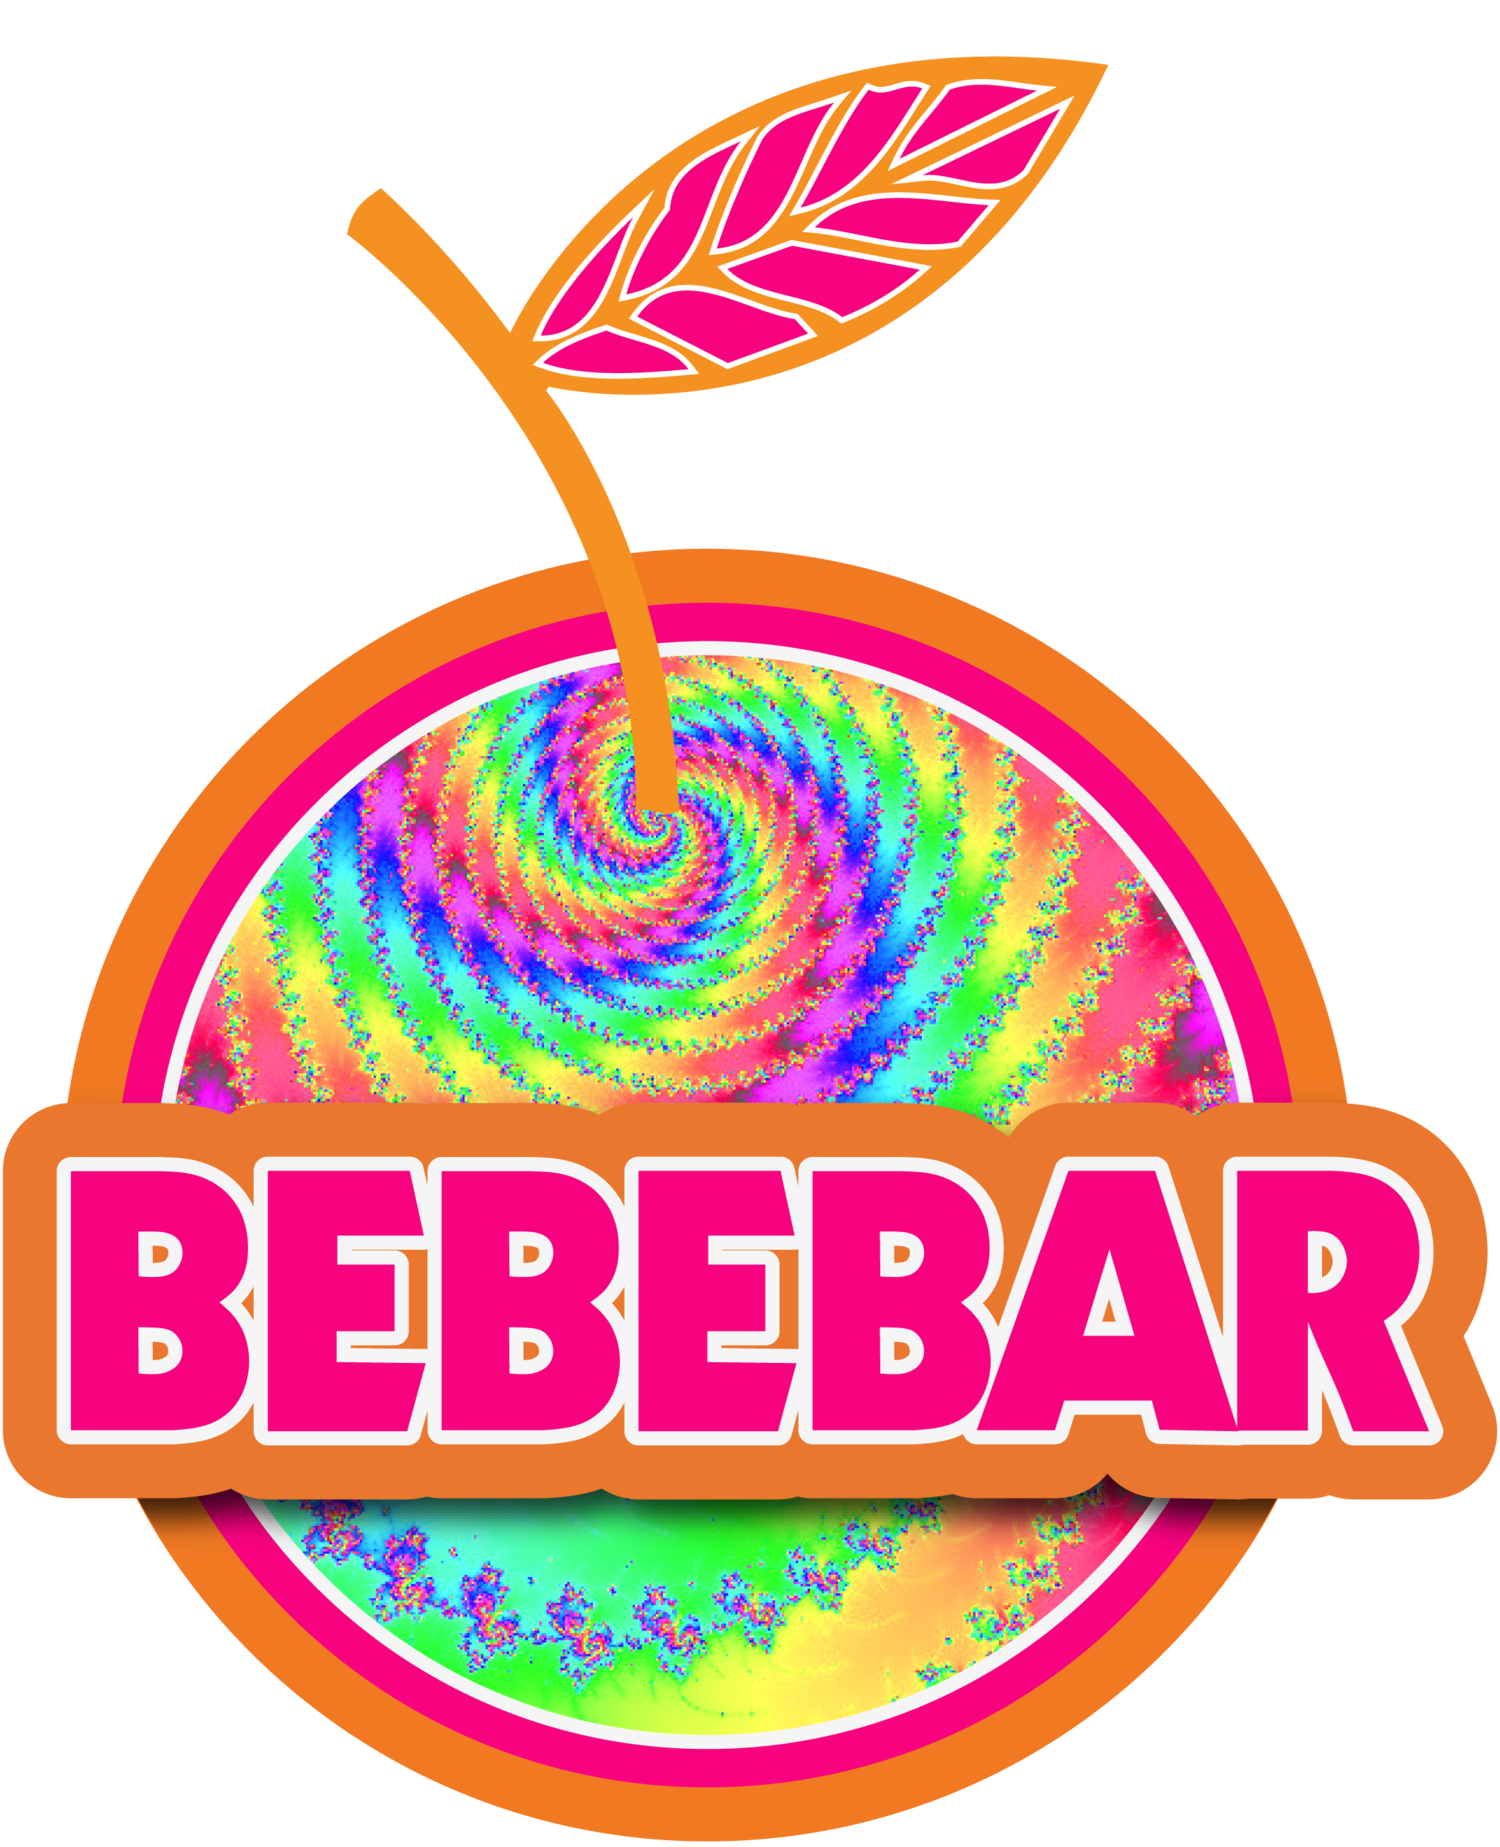 Bebebar - Açaí & Juice Bar